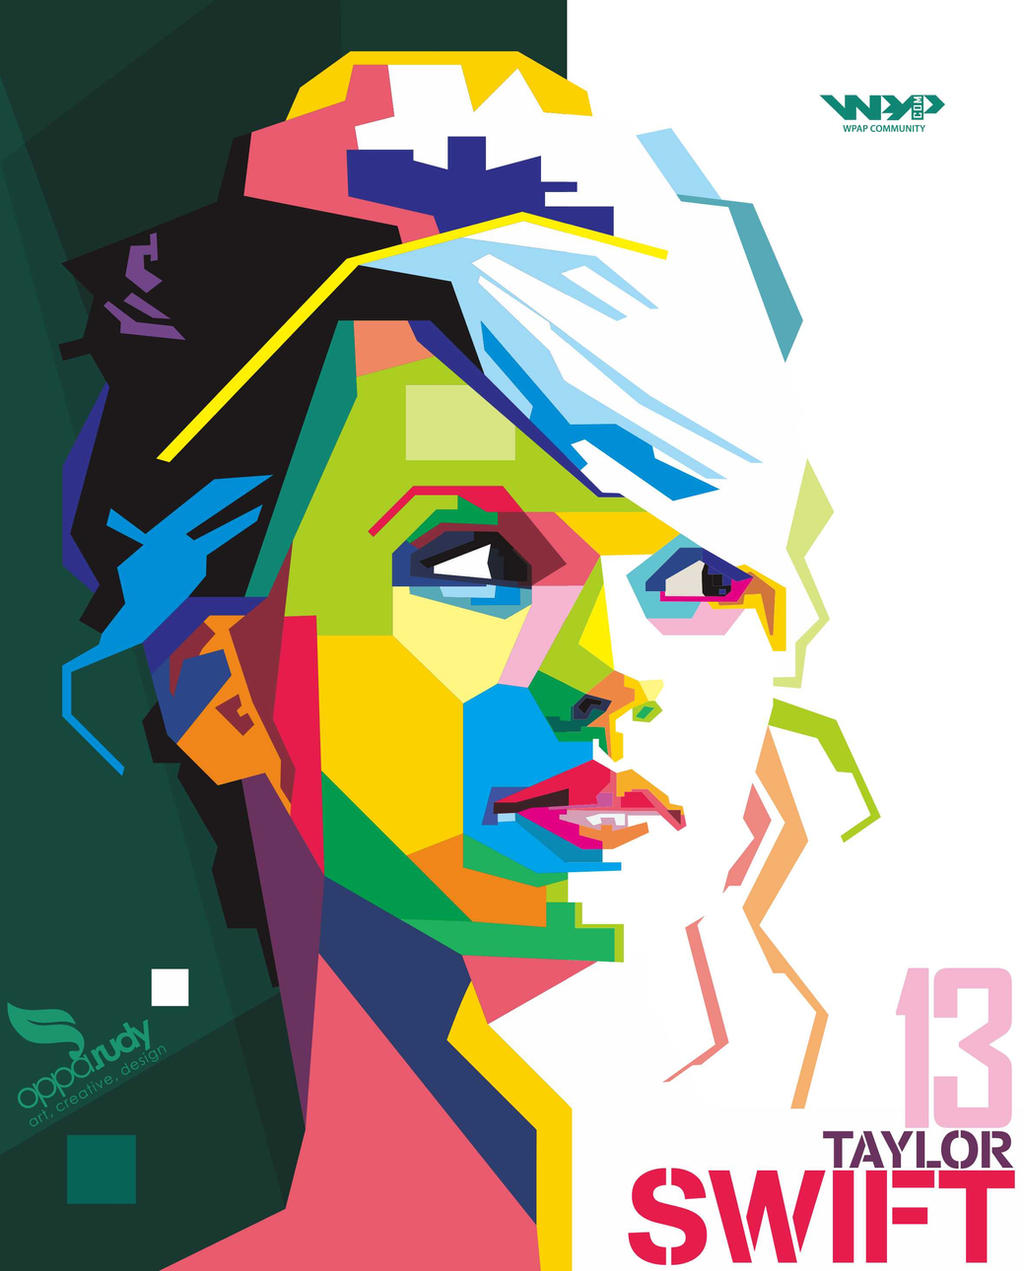 TAYLOR SWIFT WPAP 1 by opparudy